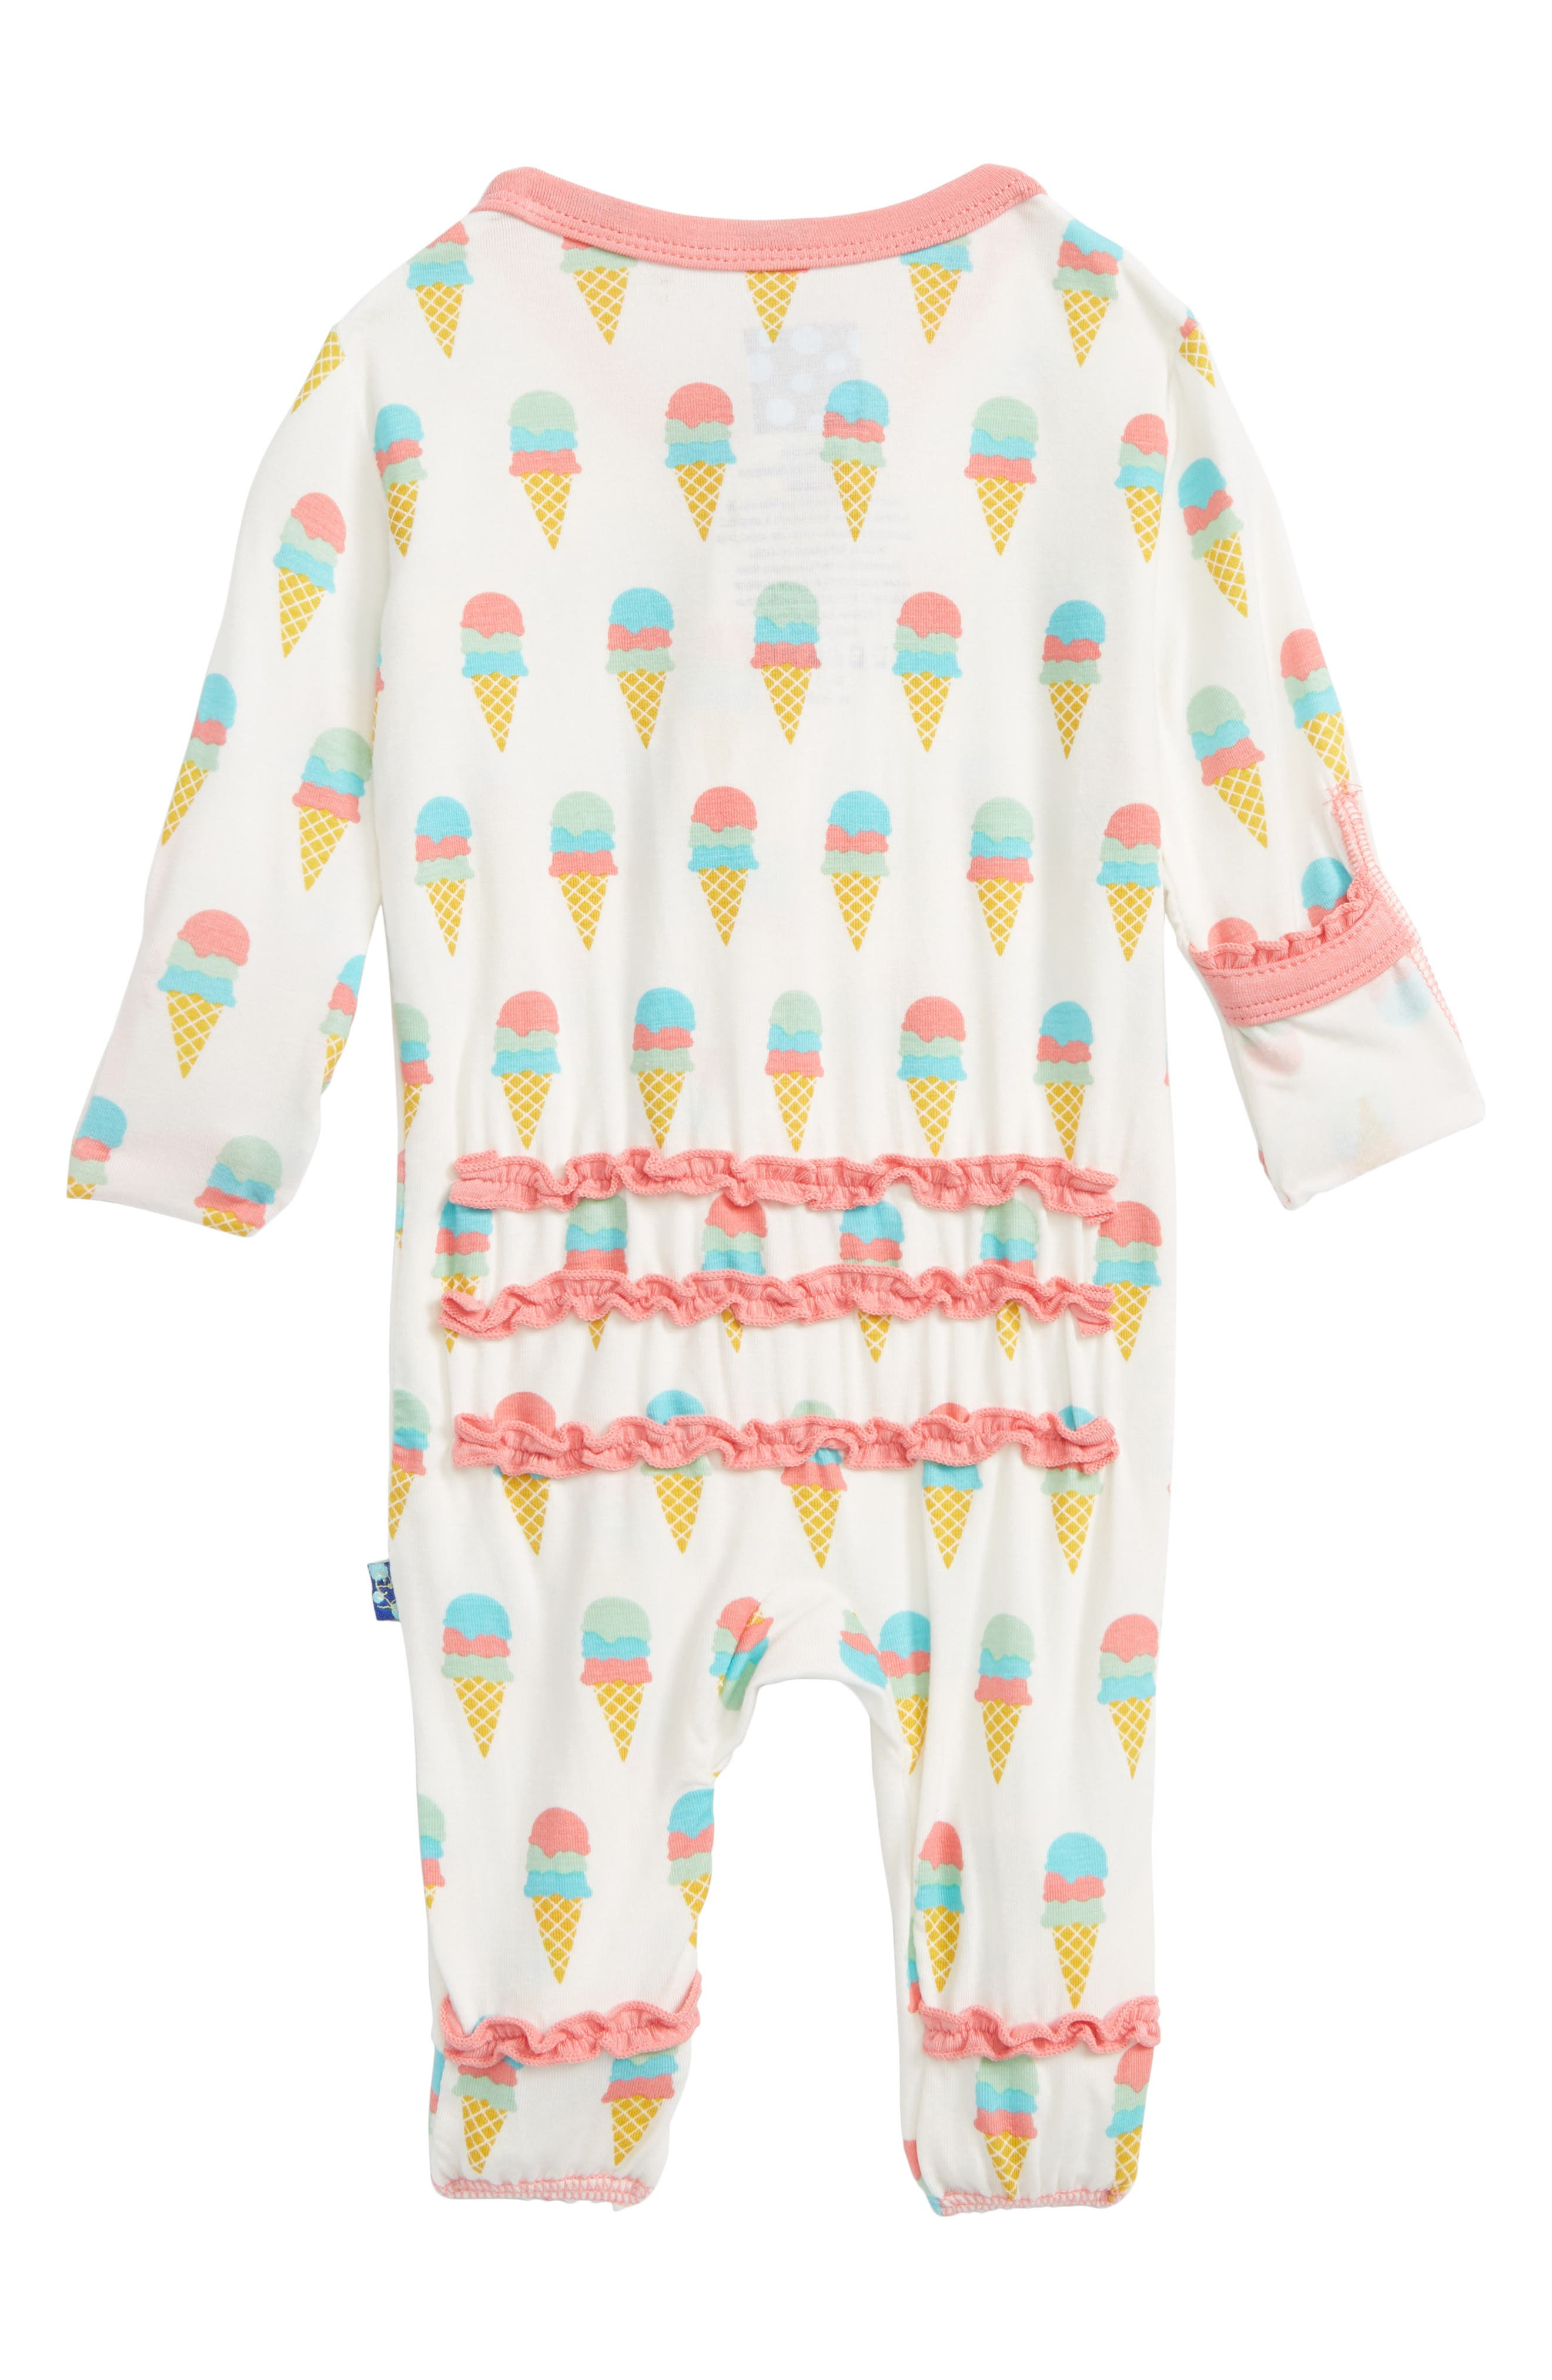 Ruffle Footie,                             Alternate thumbnail 2, color,                             Natural Ice Cream